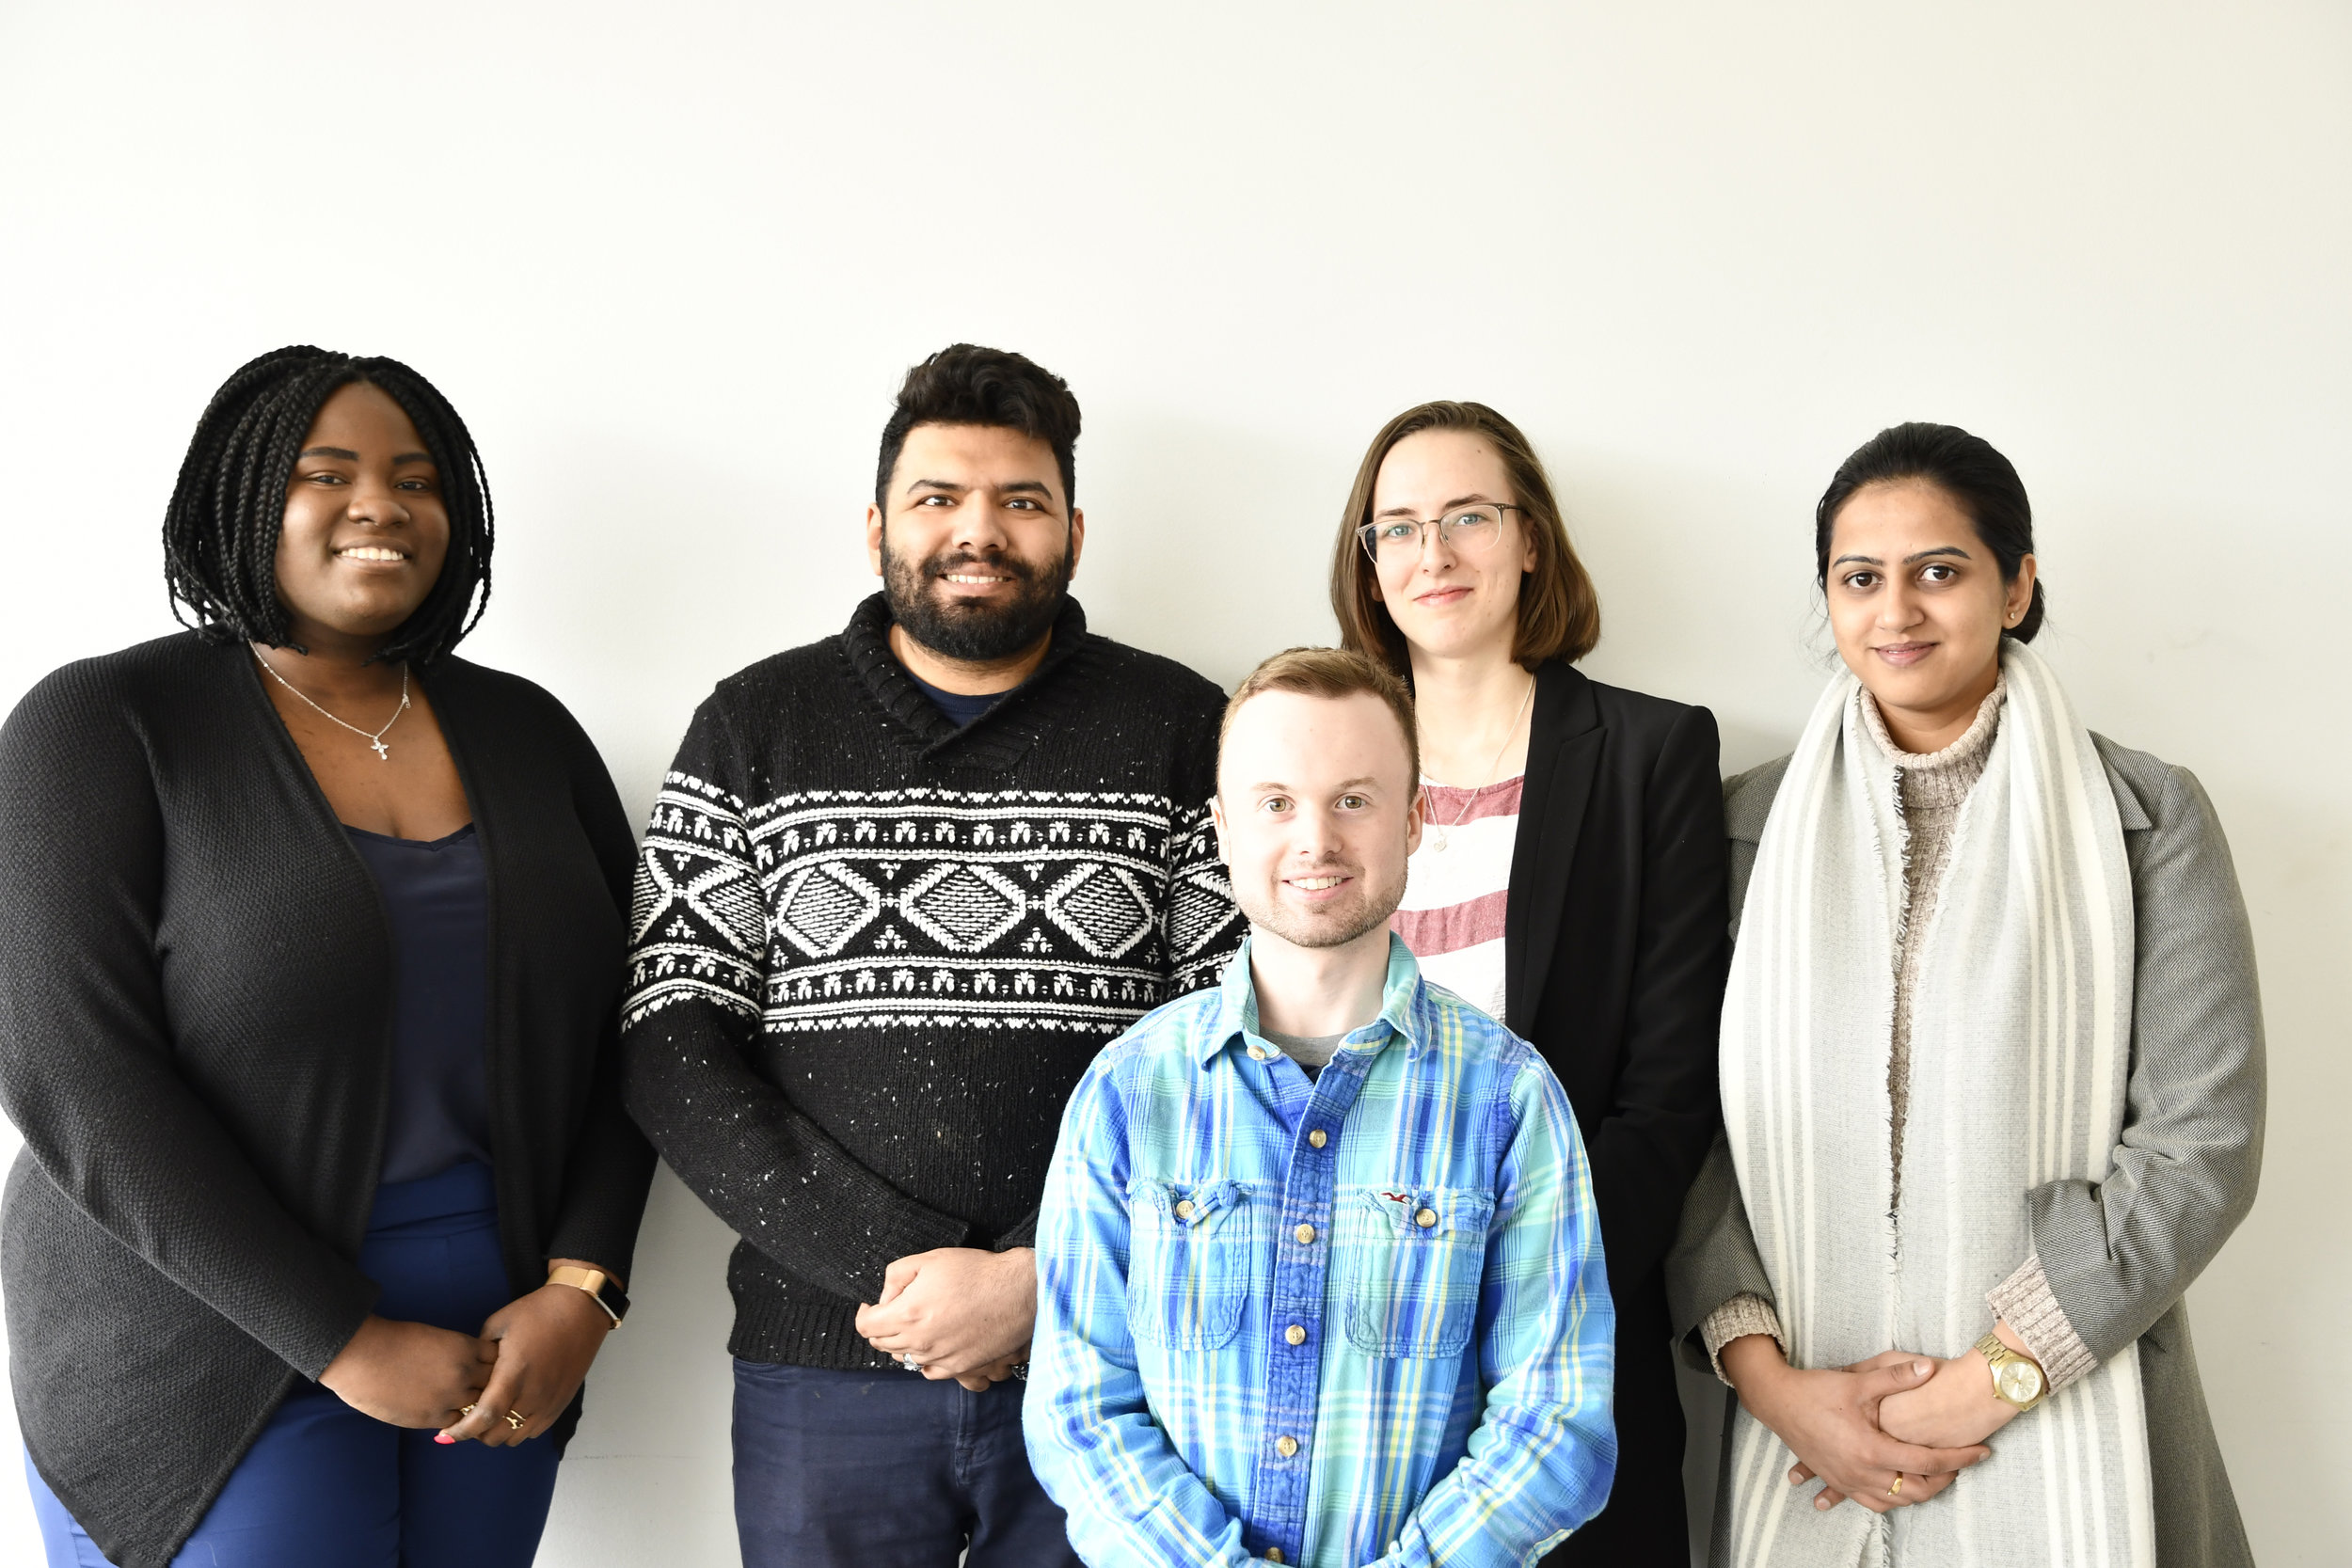 Pictured: Centennial College students Simi Ikotun, Mohammad Raza, Josh Casey, Arushu Malik and Mary Davidson partnered with CivicAction to survey millennials about the future of work.